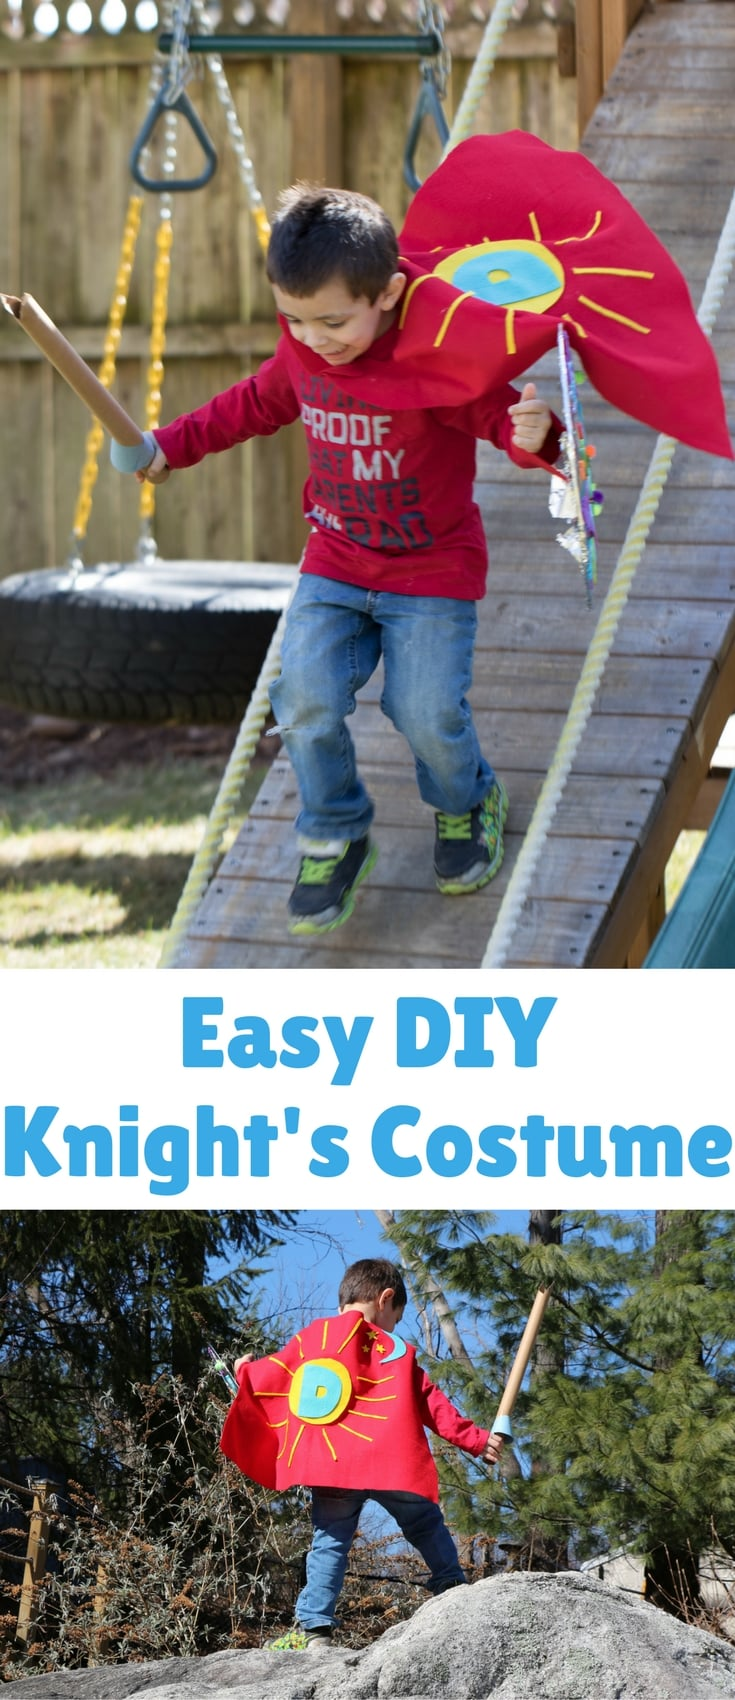 Since dress up is a favorite game here we decided to make our very own knight's costumes. They were really simple to make (if you do crafts now and then you probably have everything you need at home!) and a whole lot of fun.